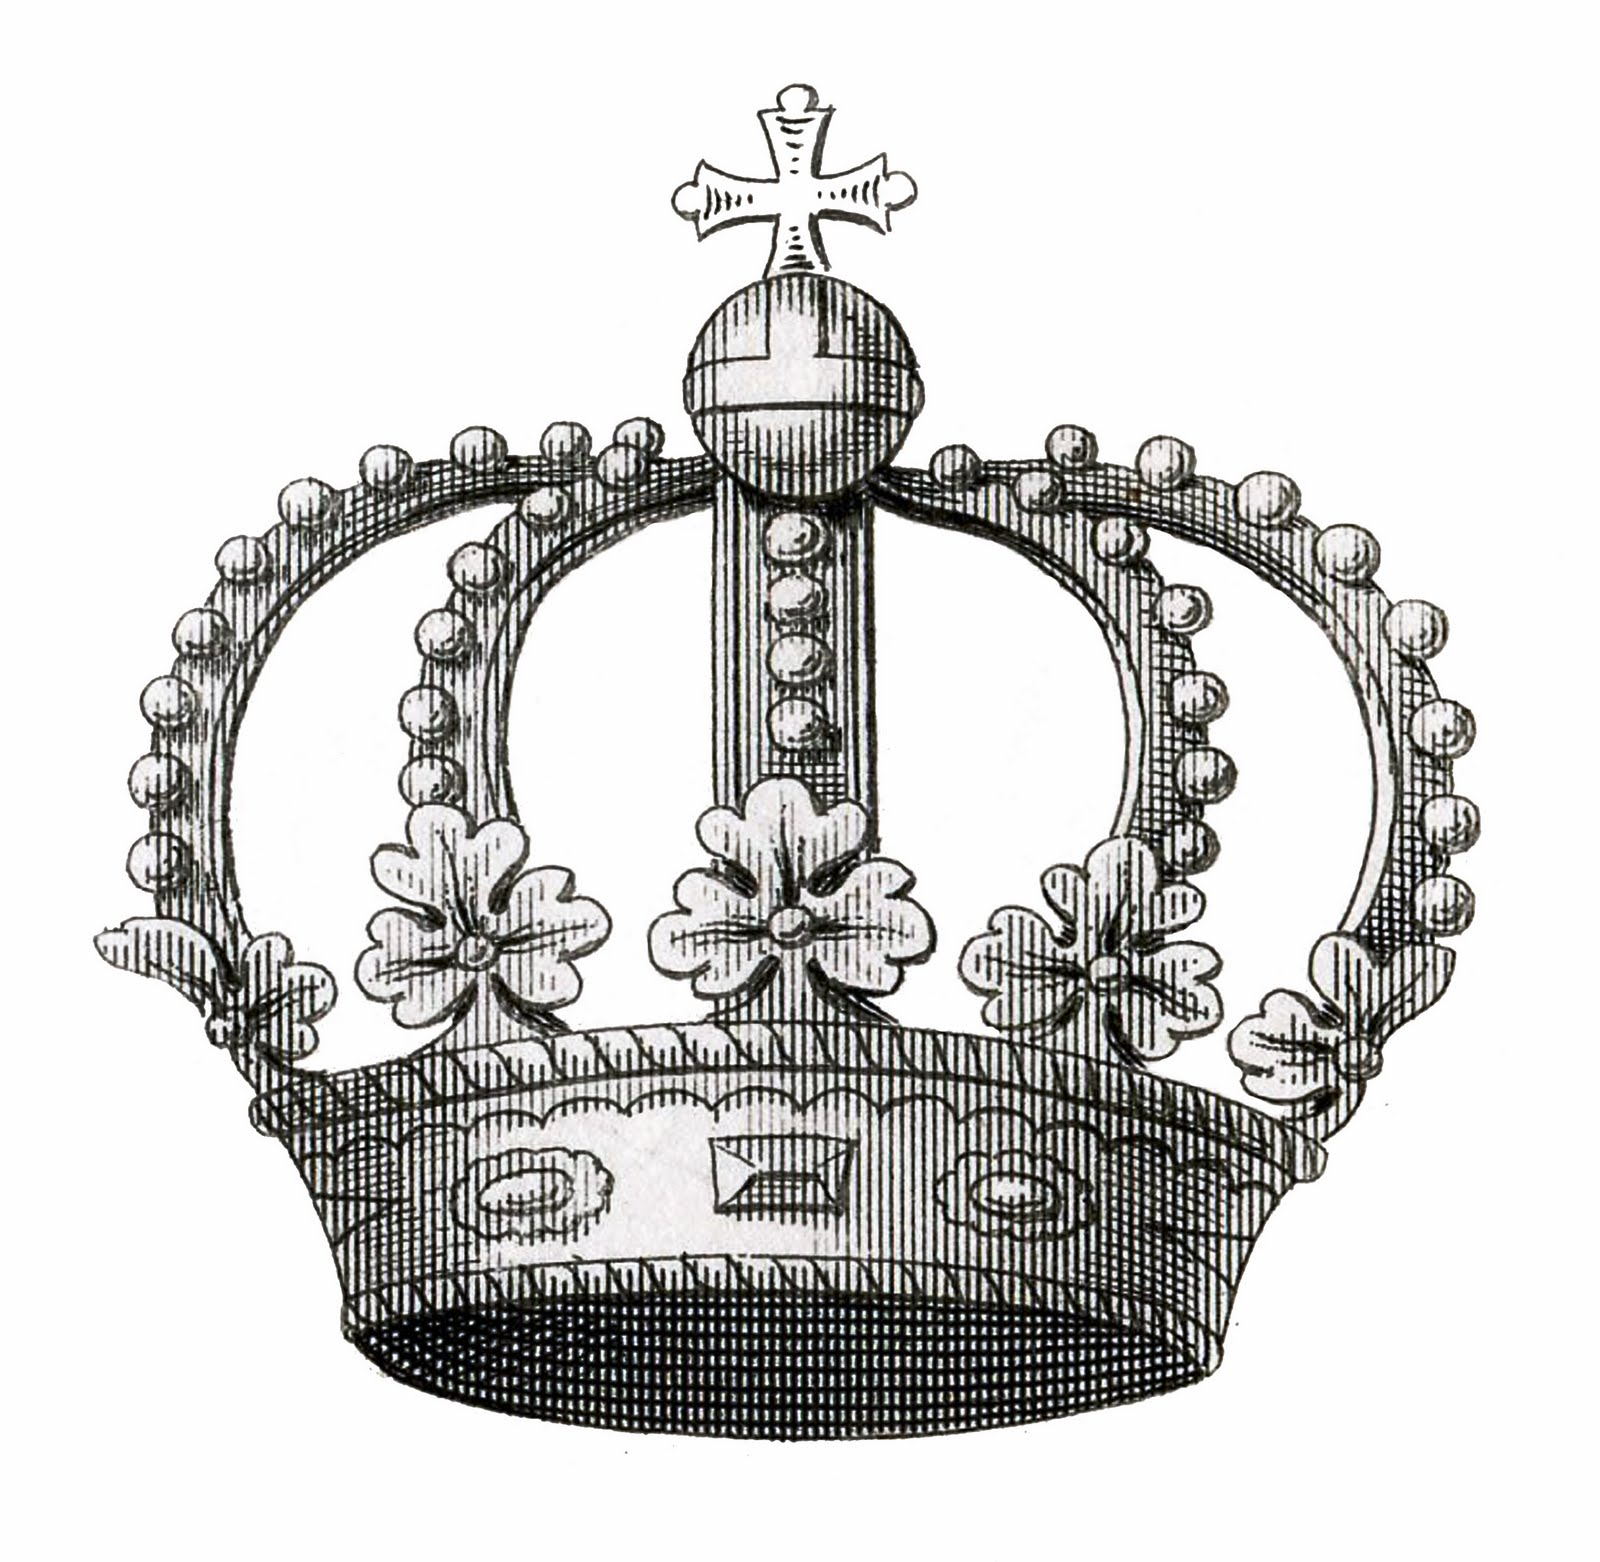 Vintage queen crown clipart jpg freeuse library Vintage Crown Image Download - The Graphics Fairy jpg freeuse library